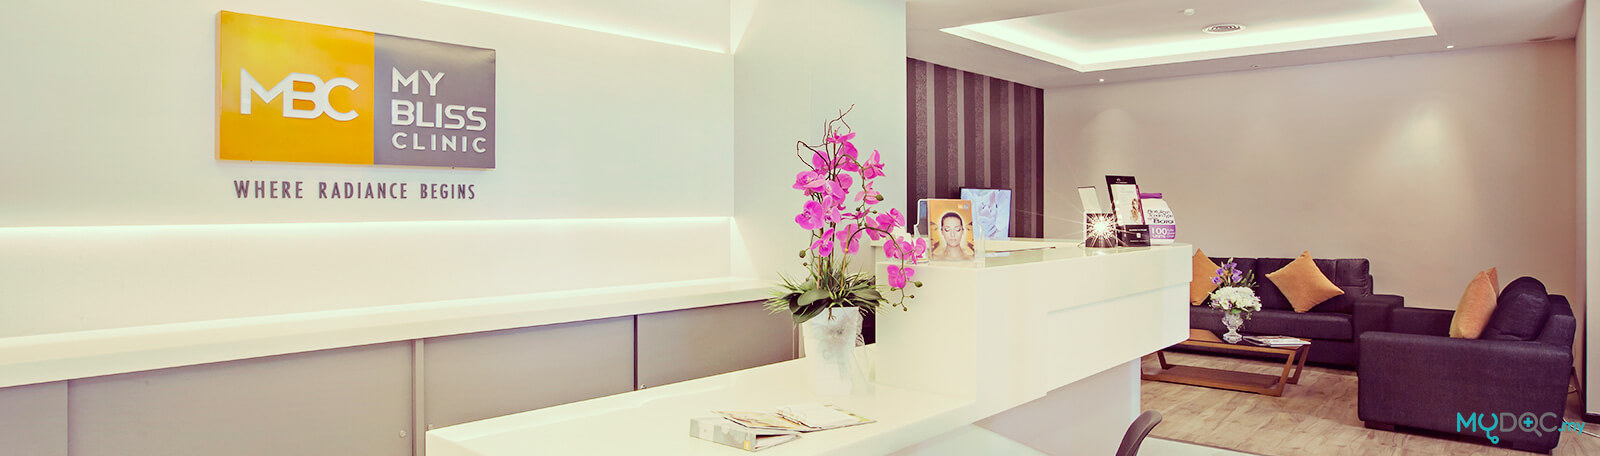 My Bliss Clinic (Publika)